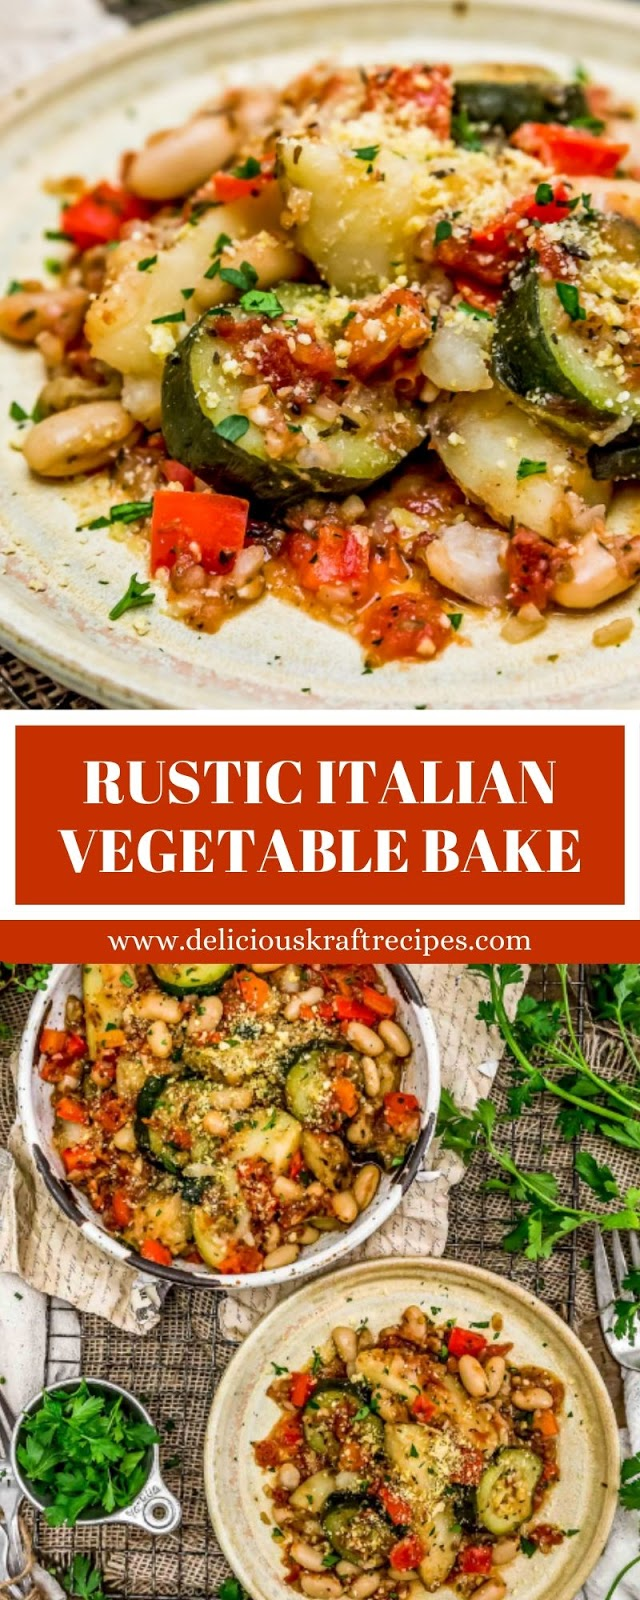 RUSTIC ITALIAN VEGETABLE BAKE